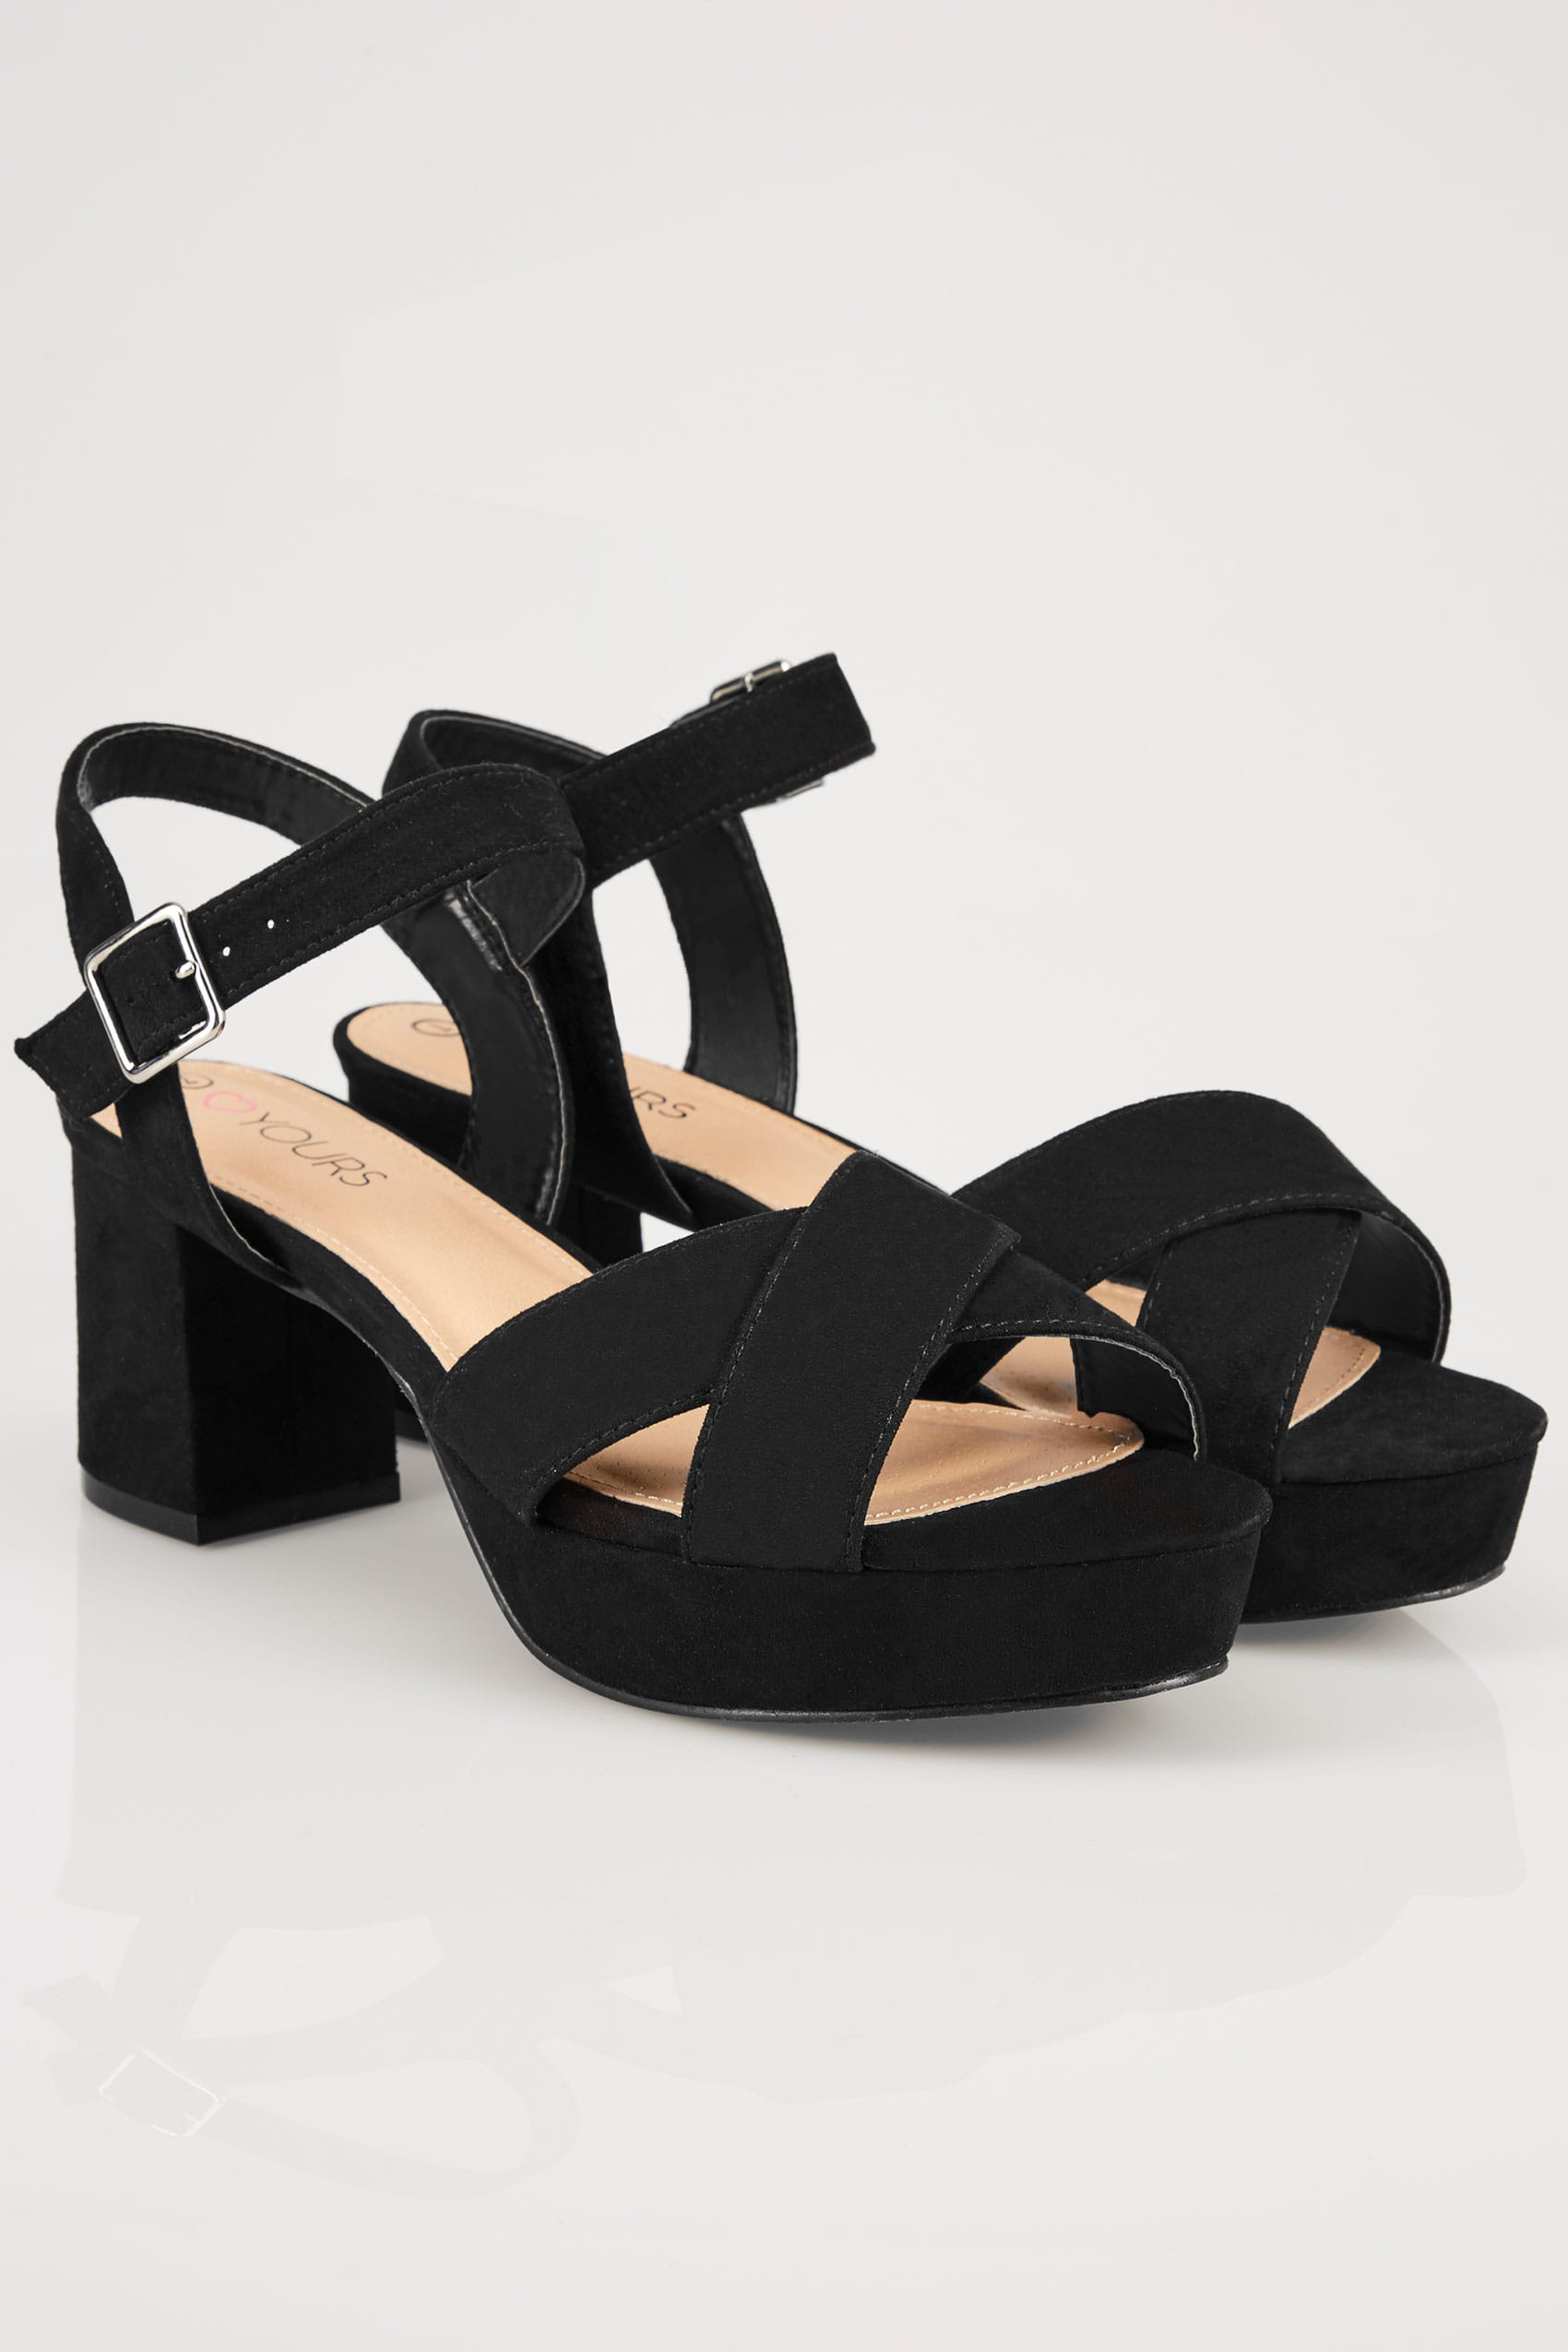 fe36f489c Black Cross Front Heeled Platform Sandals In EEE Fit